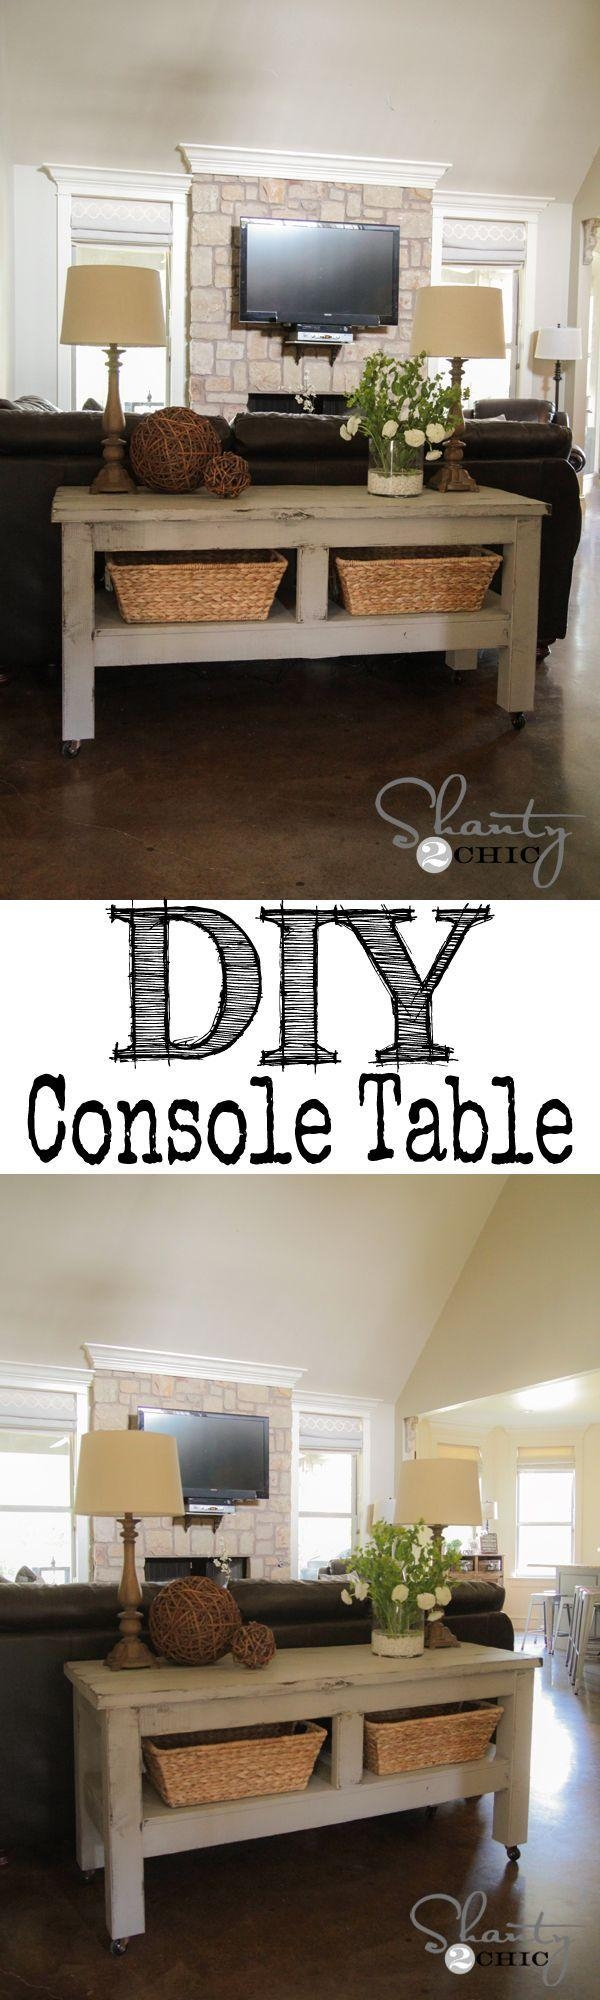 Best 25+ Table Behind Couch Ideas On Pinterest | Behind Sofa Table For Sofa Back Console (View 17 of 20)